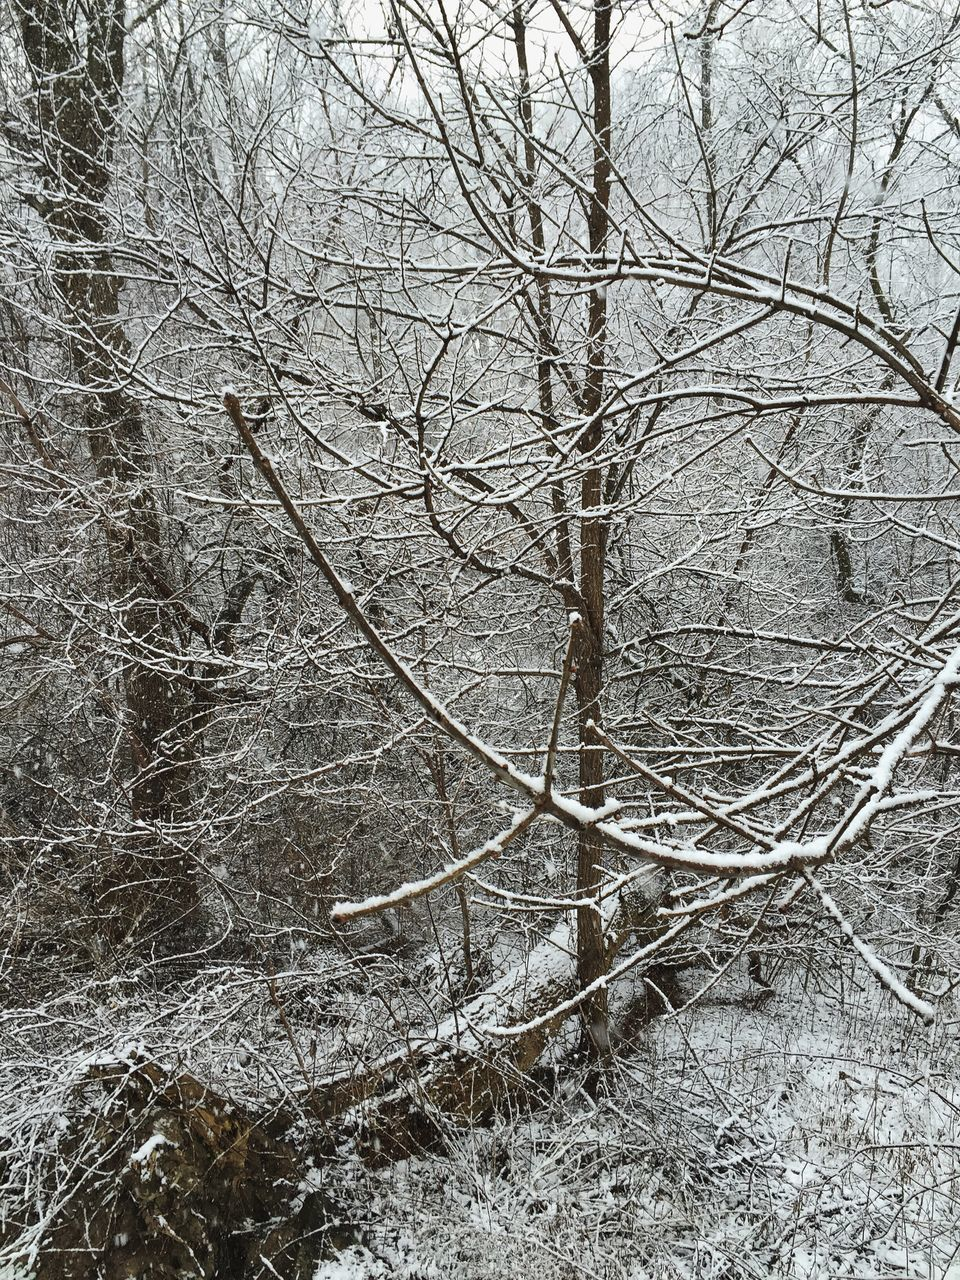 bare tree, branch, nature, tree, no people, day, outdoors, dead plant, tranquility, beauty in nature, winter, dead tree